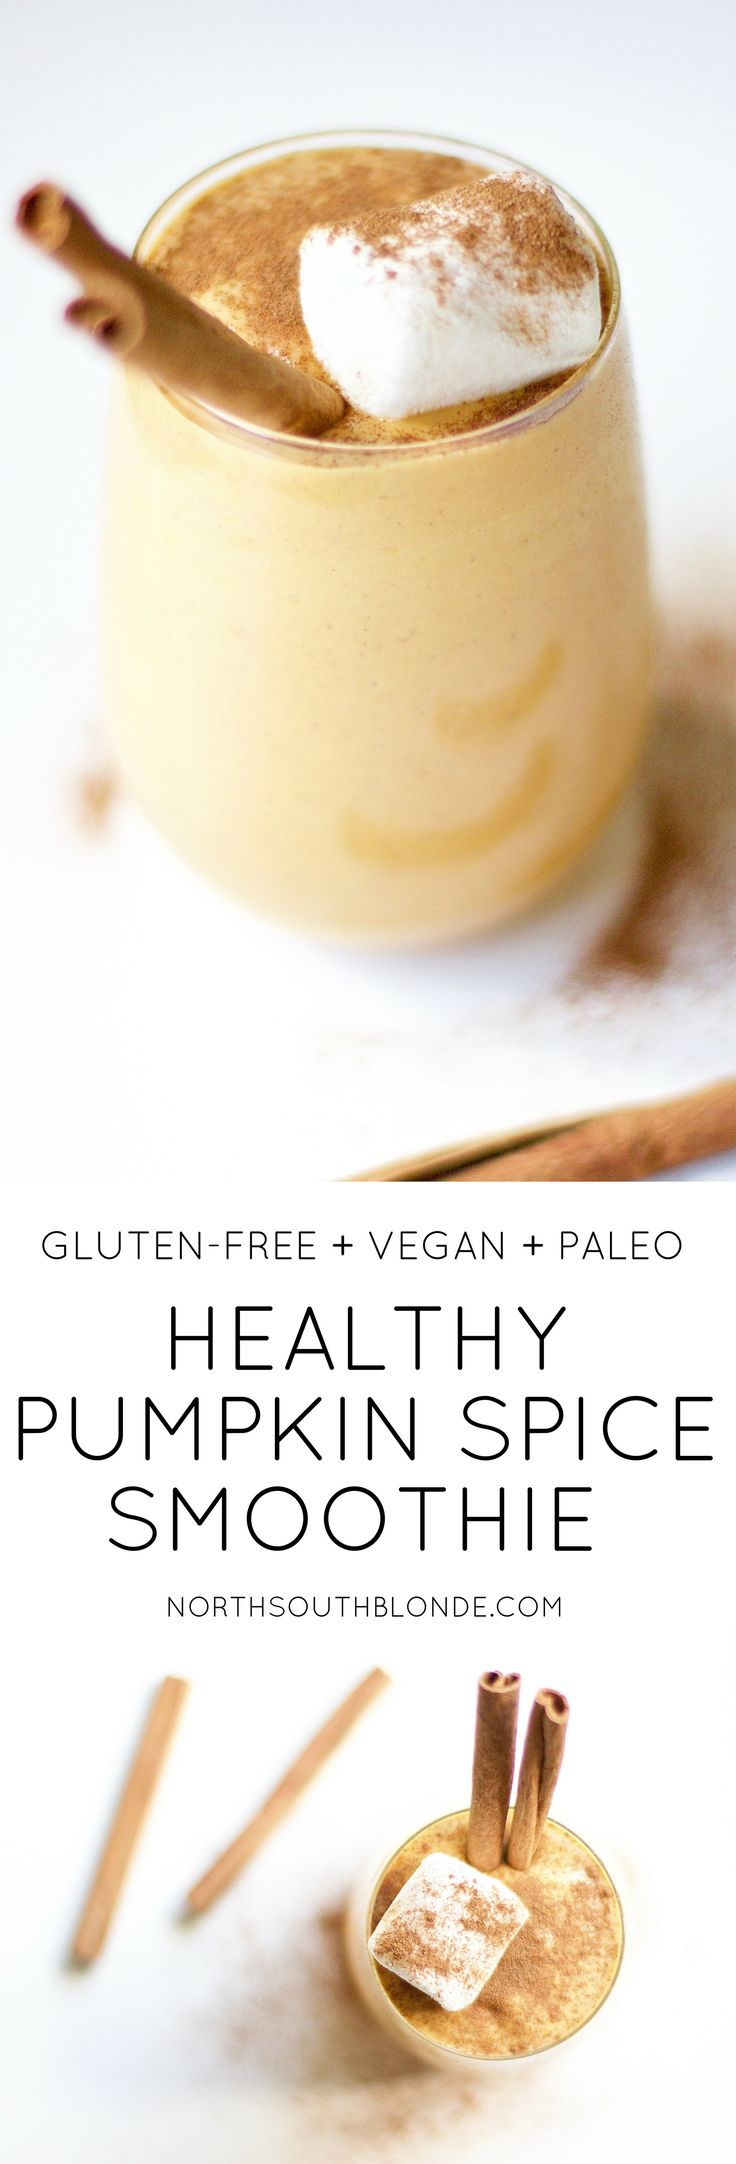 This healthy pumpkin spice smoothie can be enjoyed any time of day to give you that cozy fall feeling, without the guilt. Pumpkin spice and everything nice! Weight Loss | Low Calorie | Low Fat | Low Carb | Nutritious | Fibre | Gluten-Free | Vegan | Paleo